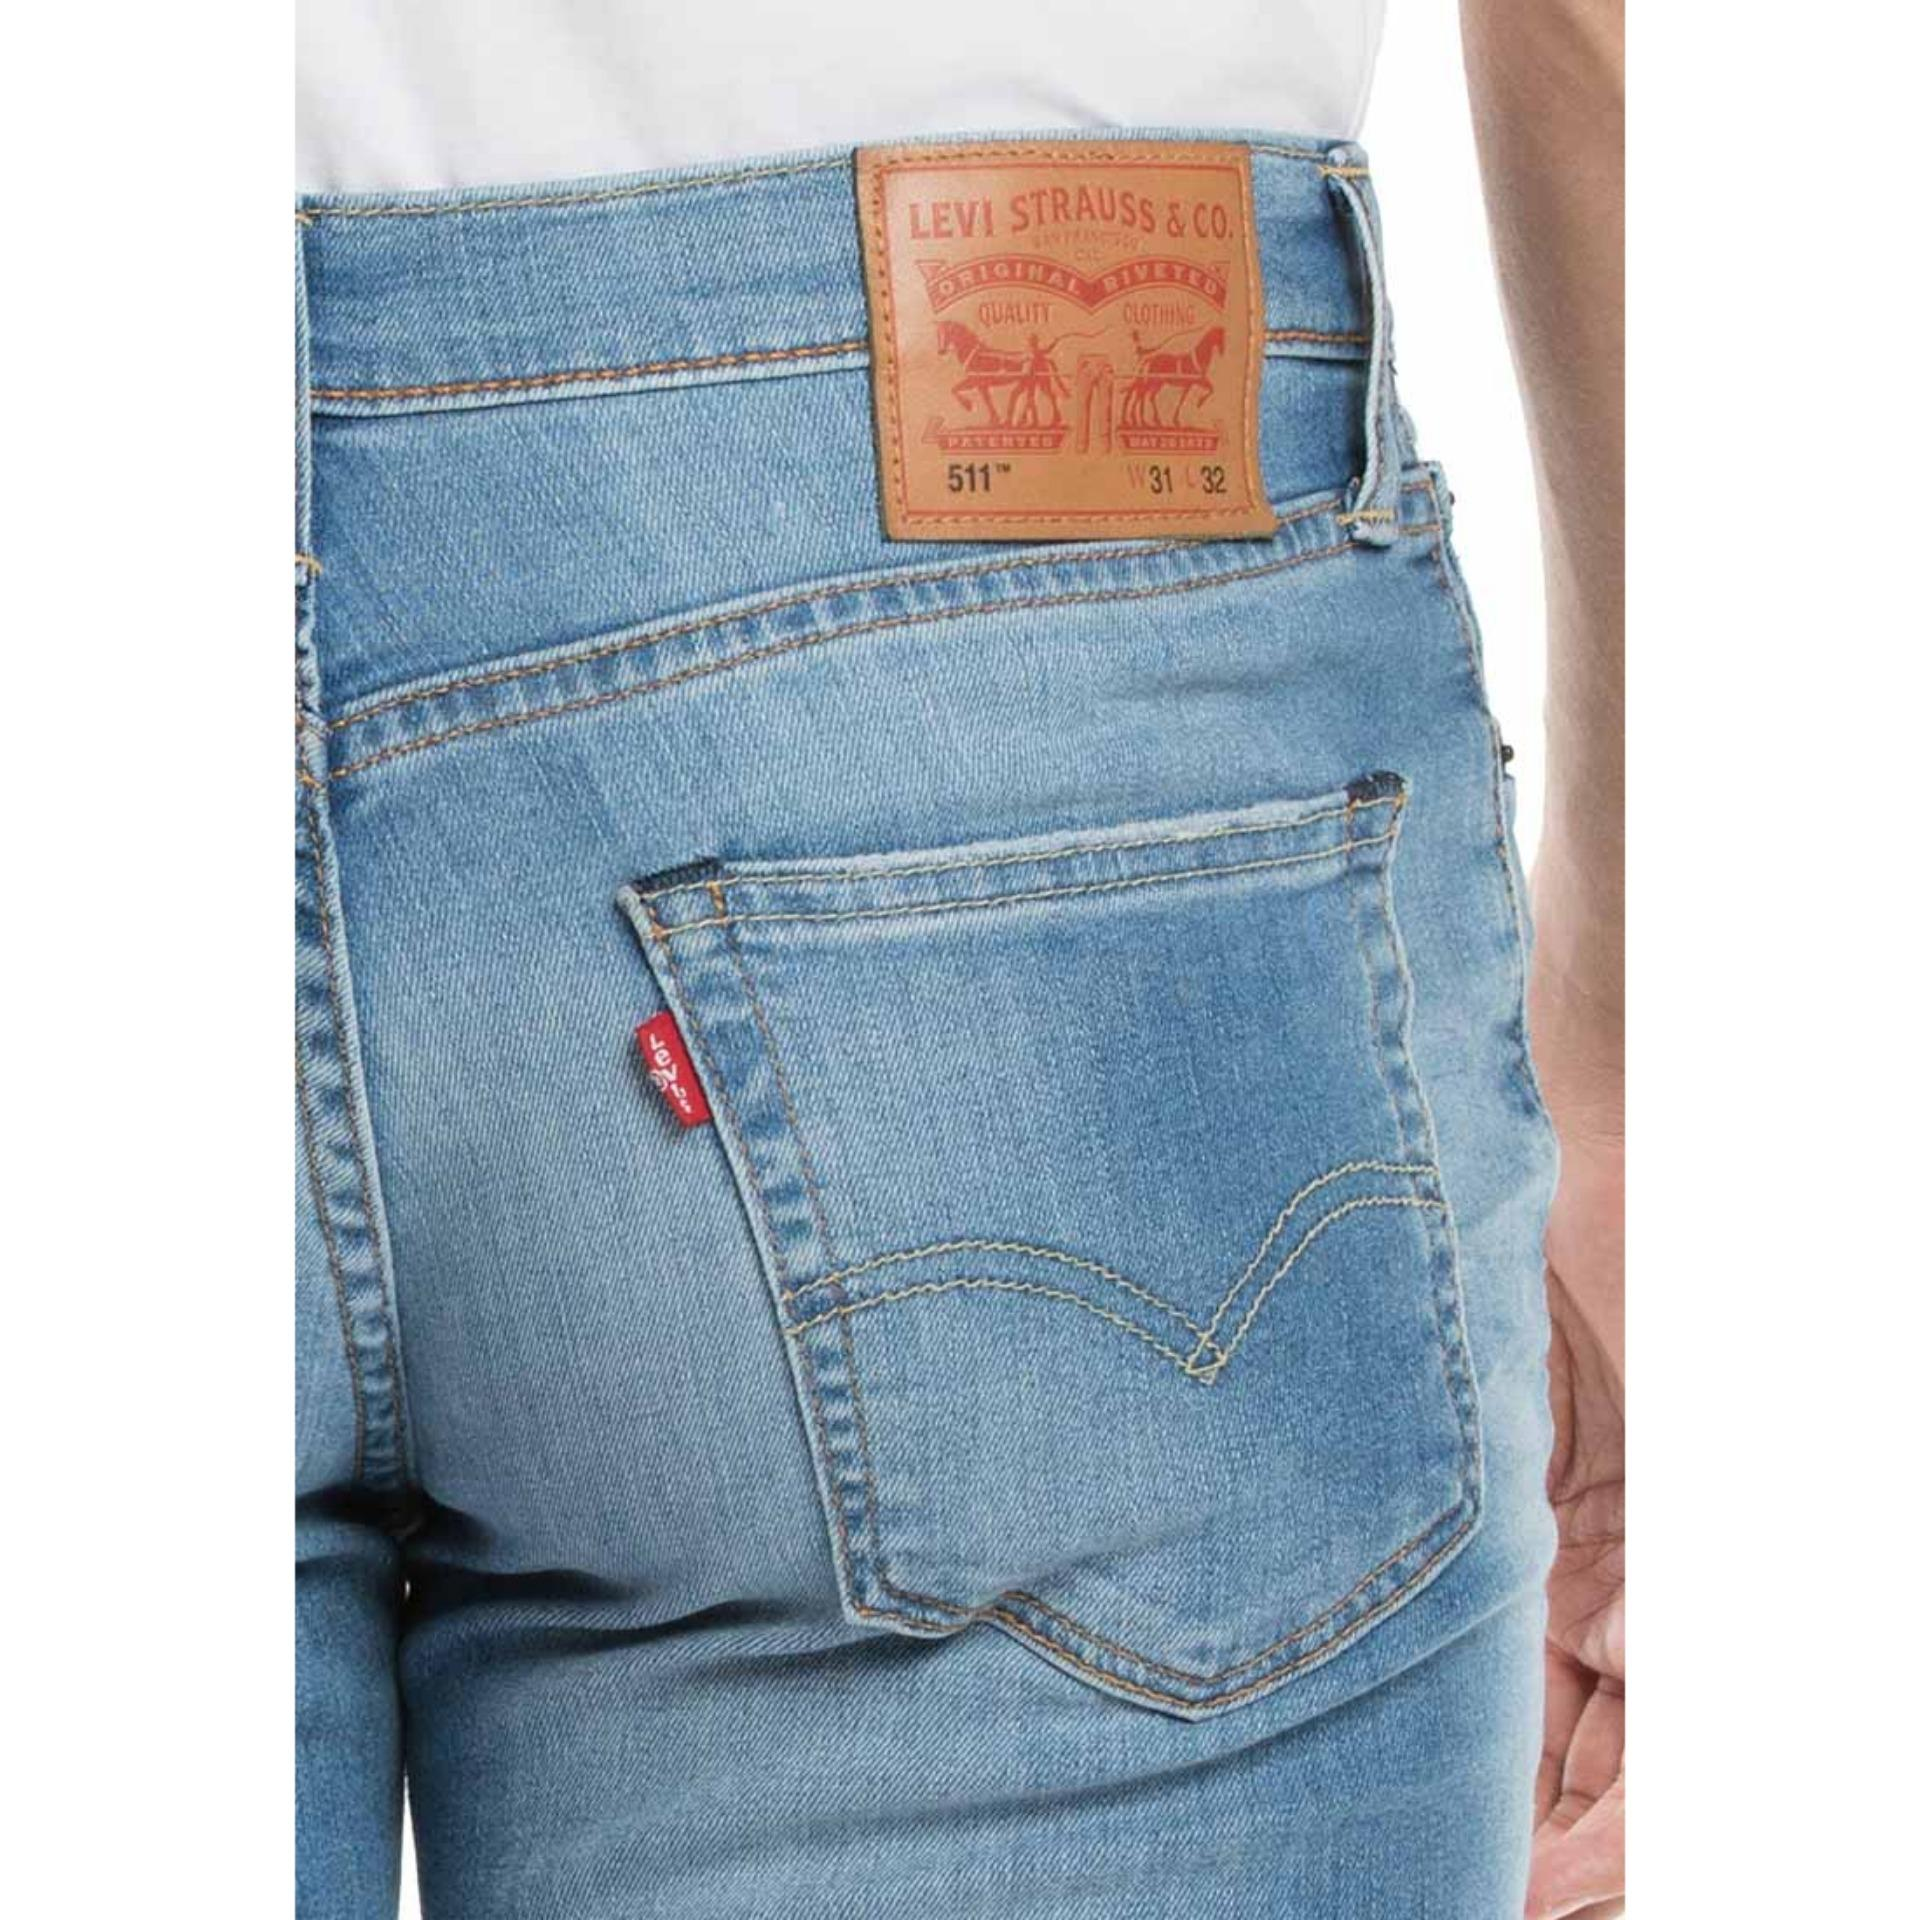 7b4d5dcffa4a ... Levi s 511 Slim Fit Performance Cool Jeans - Cachi Peak 04511-2865 - 5